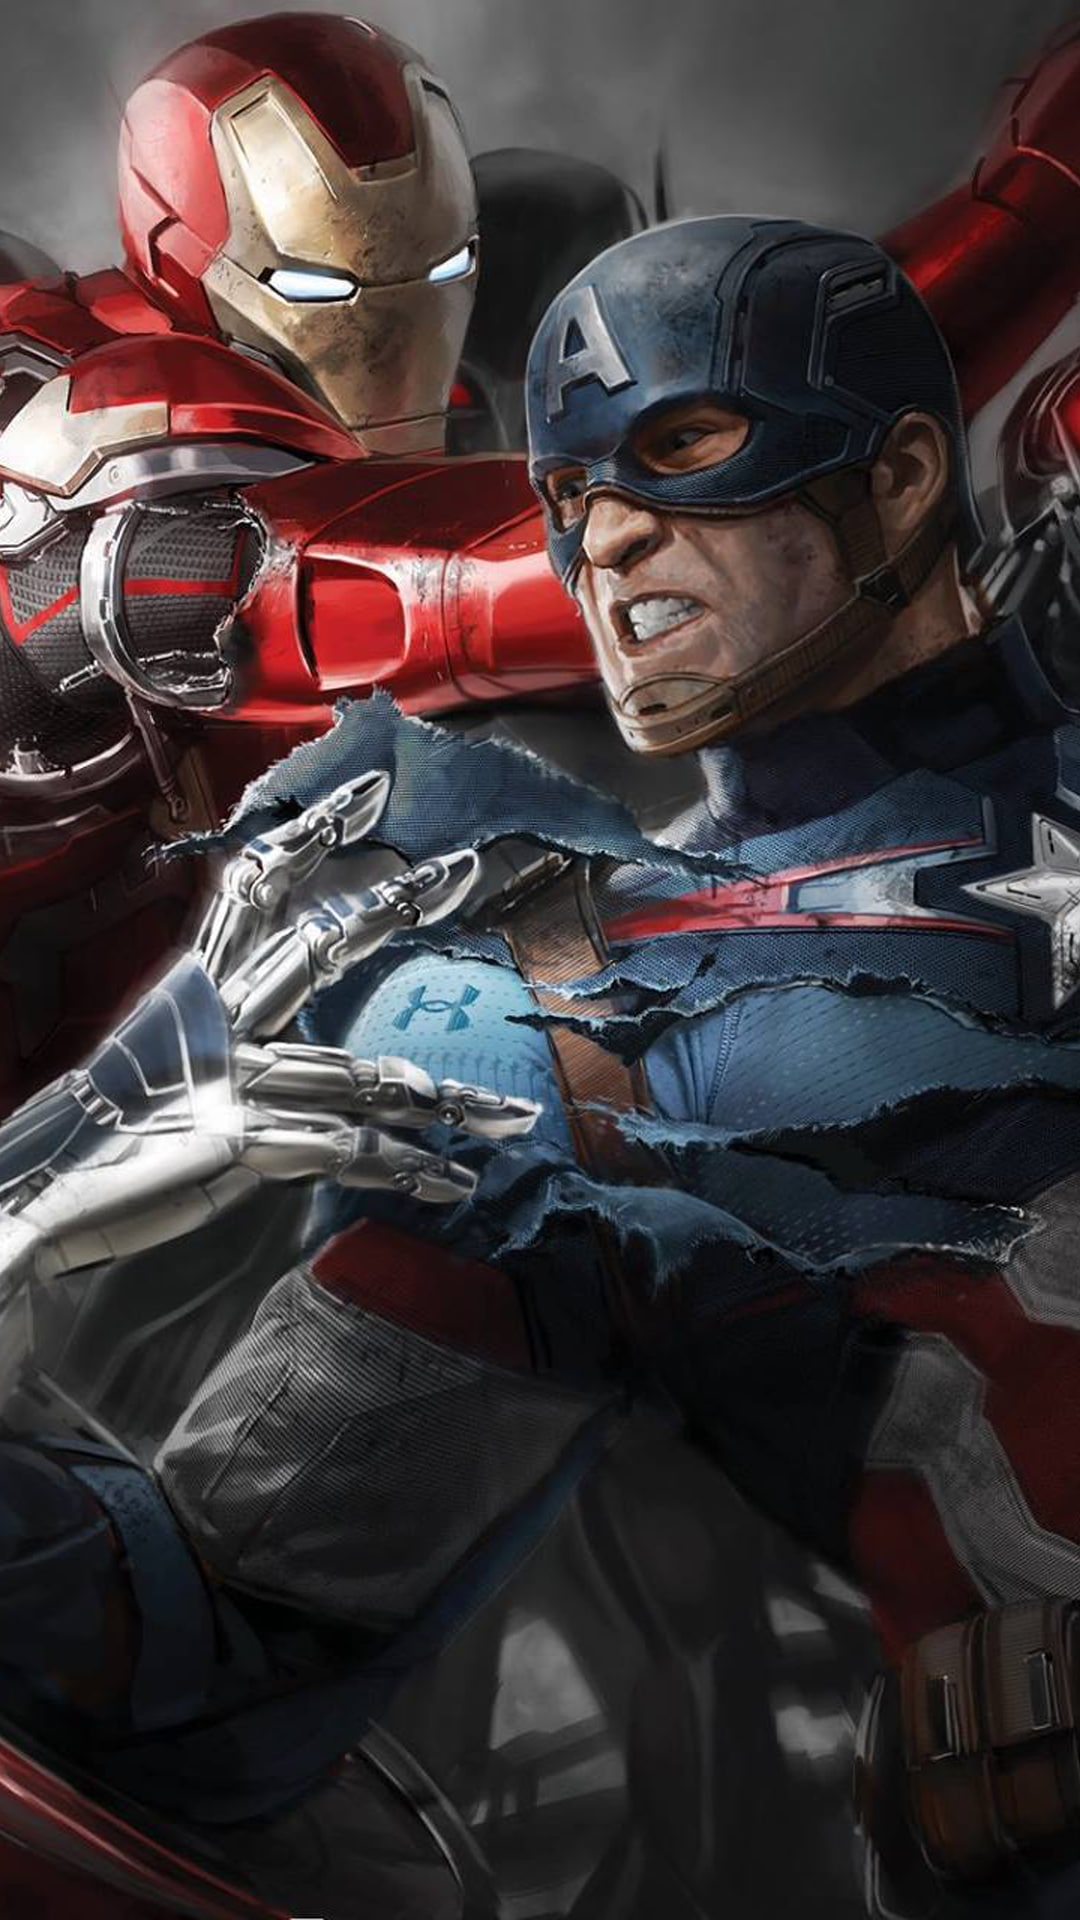 Captain america civil war hd wallpapers for iphone apple - Captain america hd mobile wallpaper ...